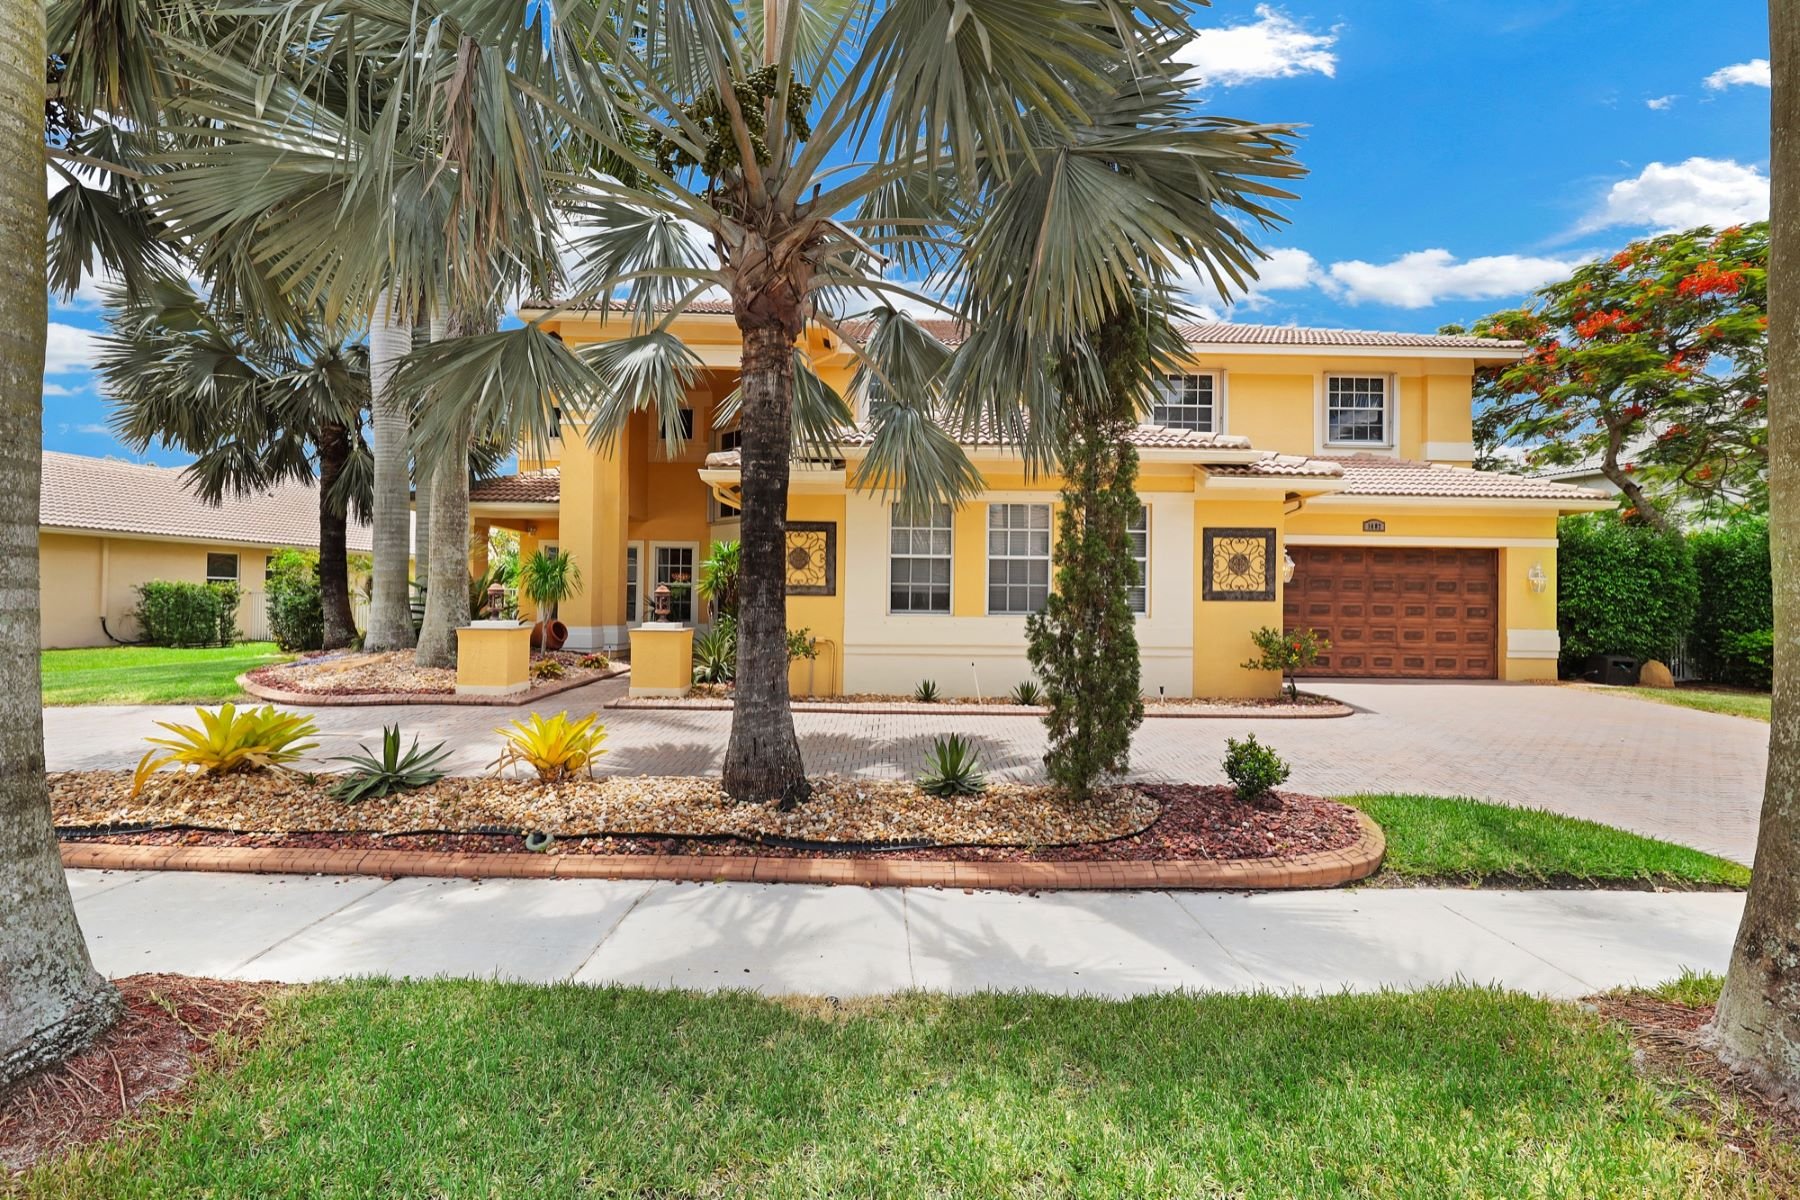 Single Family Homes for Active at 1487 Victoria Isle Dr Weston, Florida 33327 United States